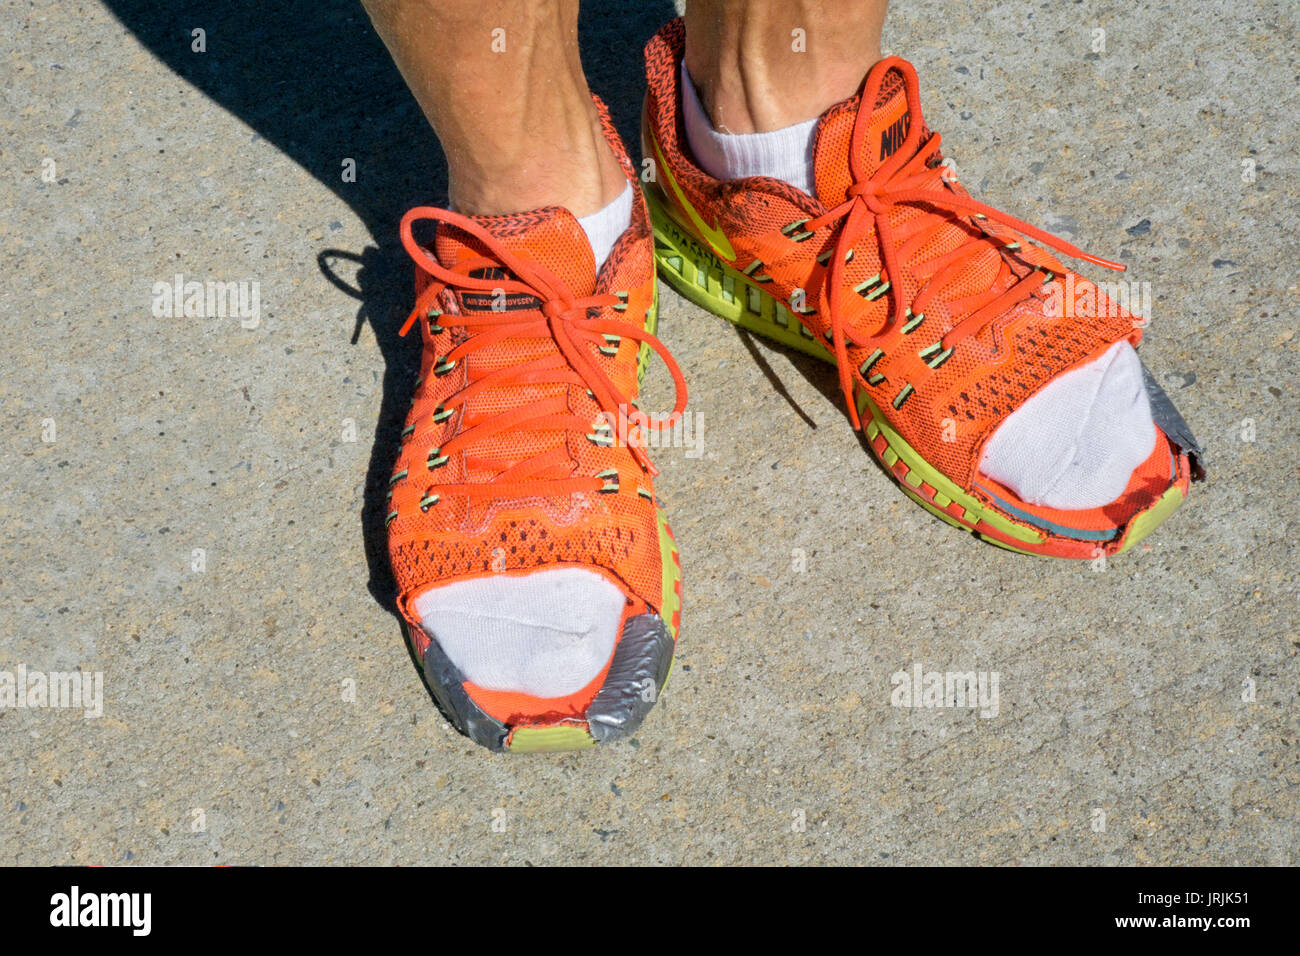 Ultra marathon runner's shoes with the